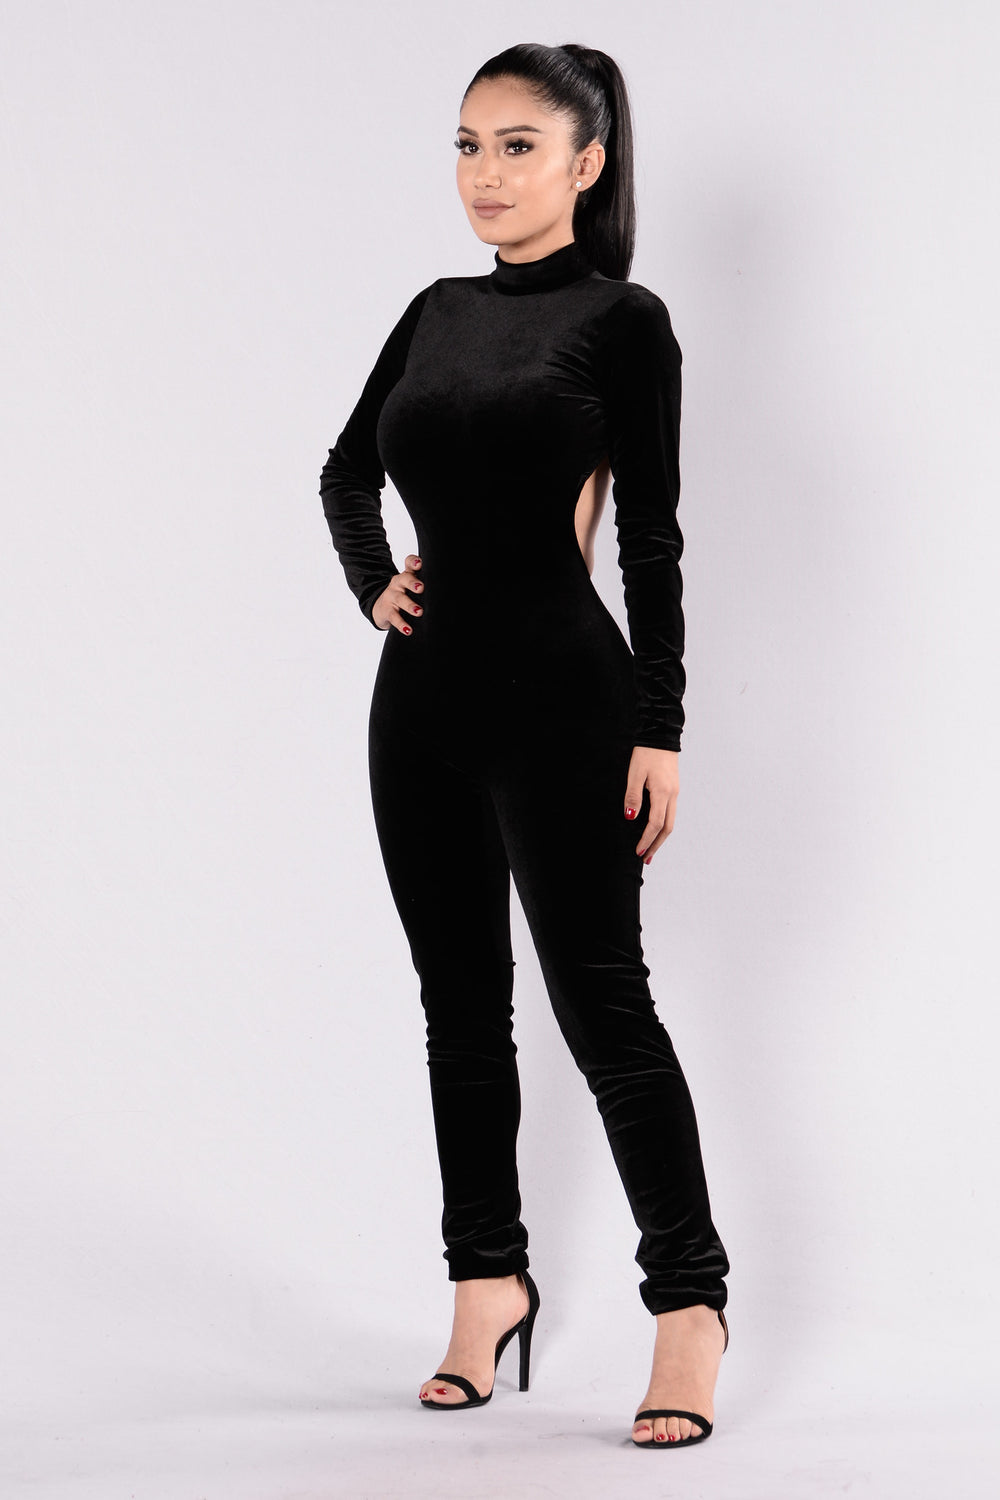 Careless Whisper Jumpsuit - Black